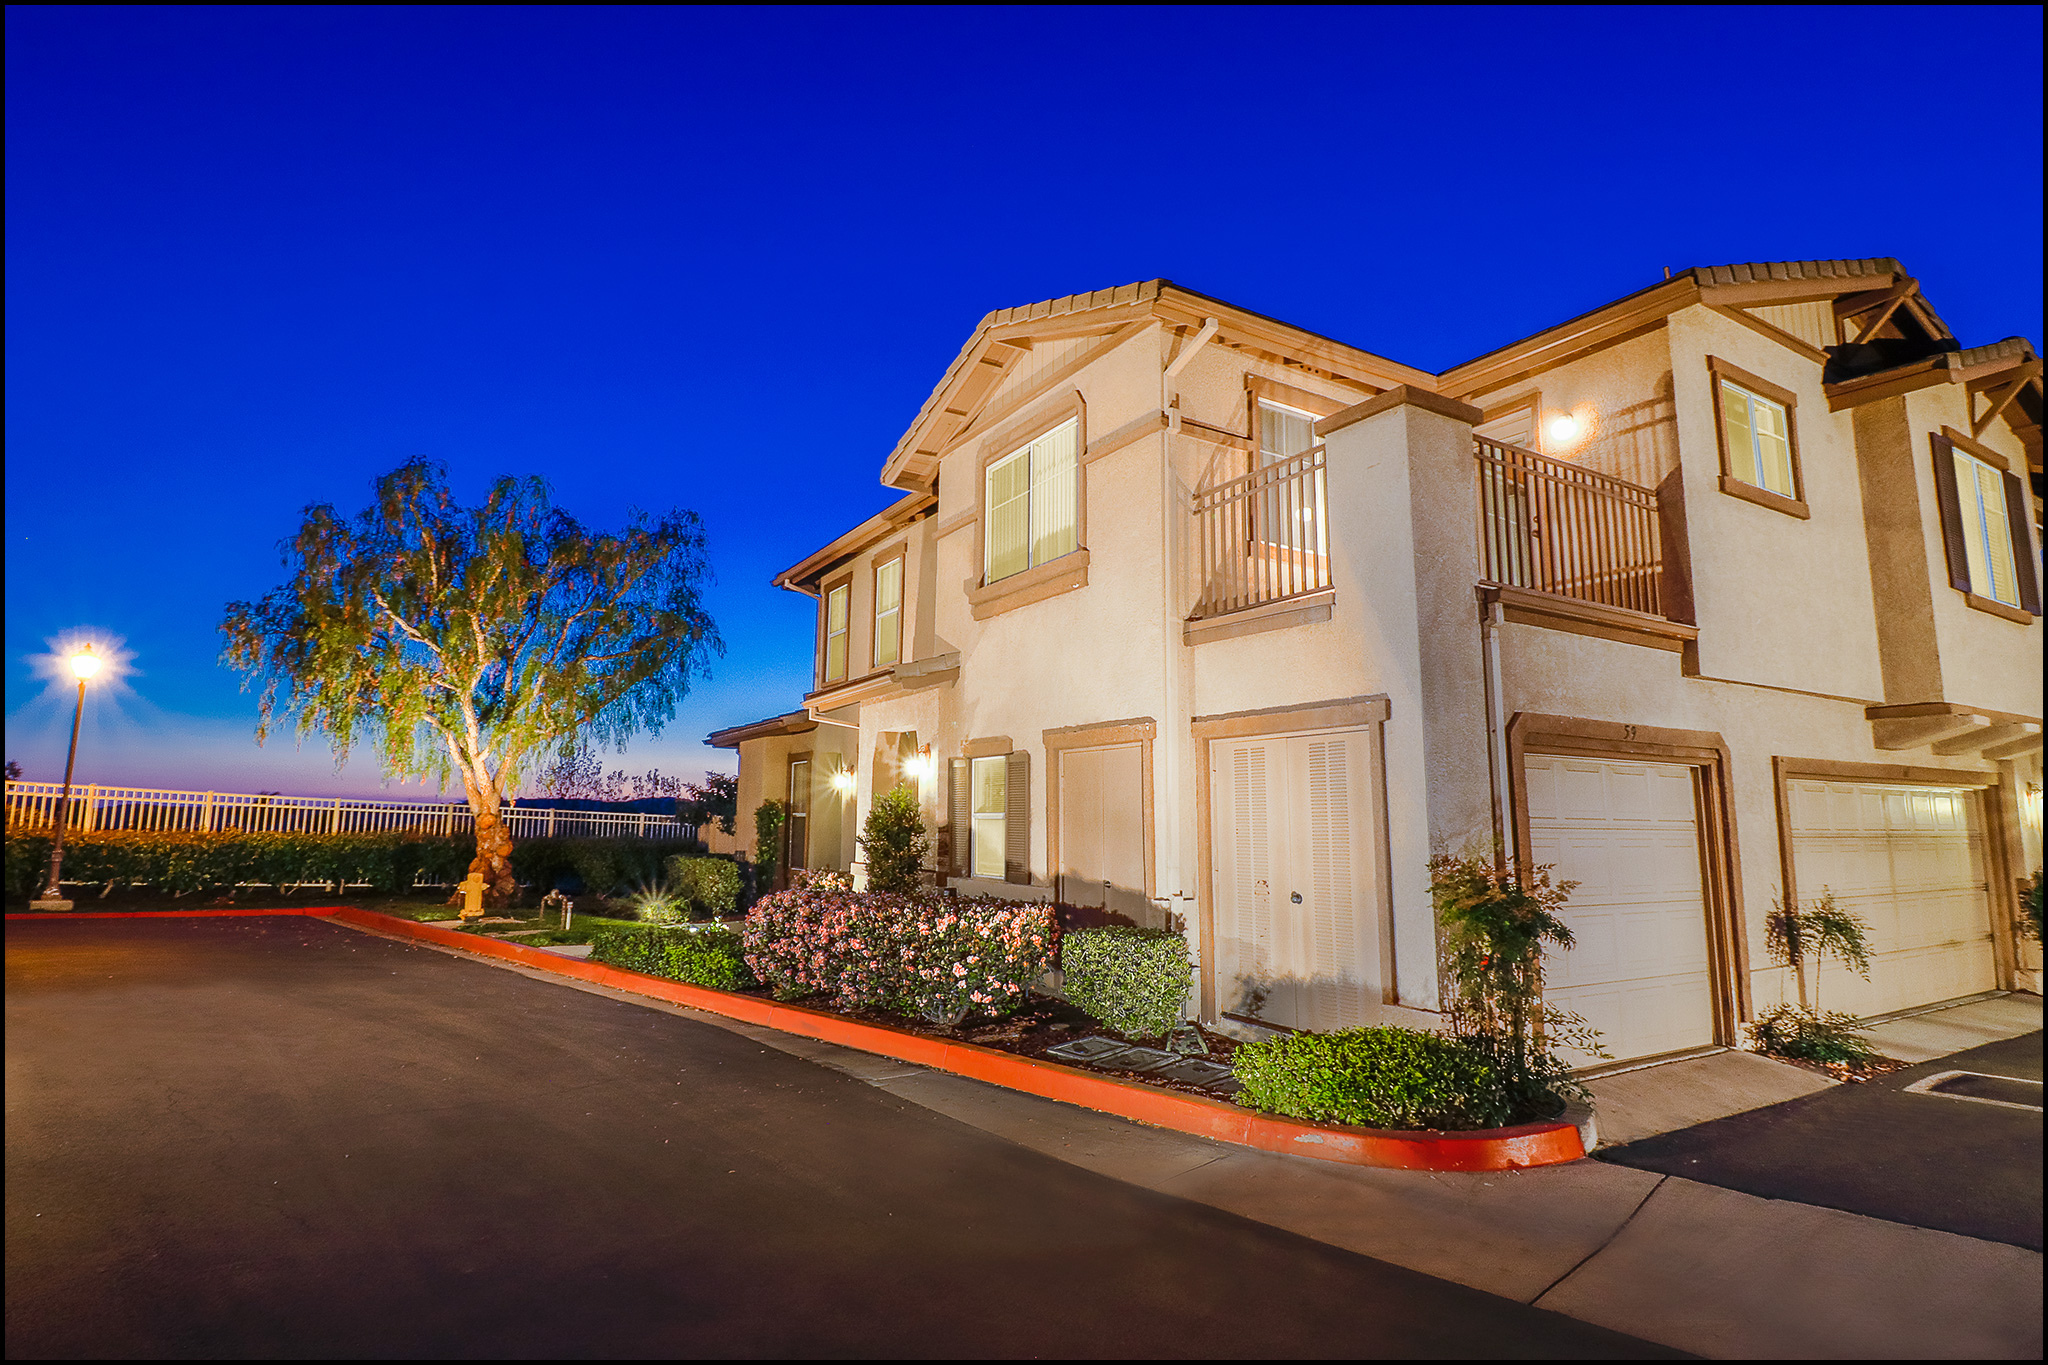 59 Red Bud, Aliso Viejo – VIRTUAL OPEN HOUSE Sat 04/17 1:30pm-2pm